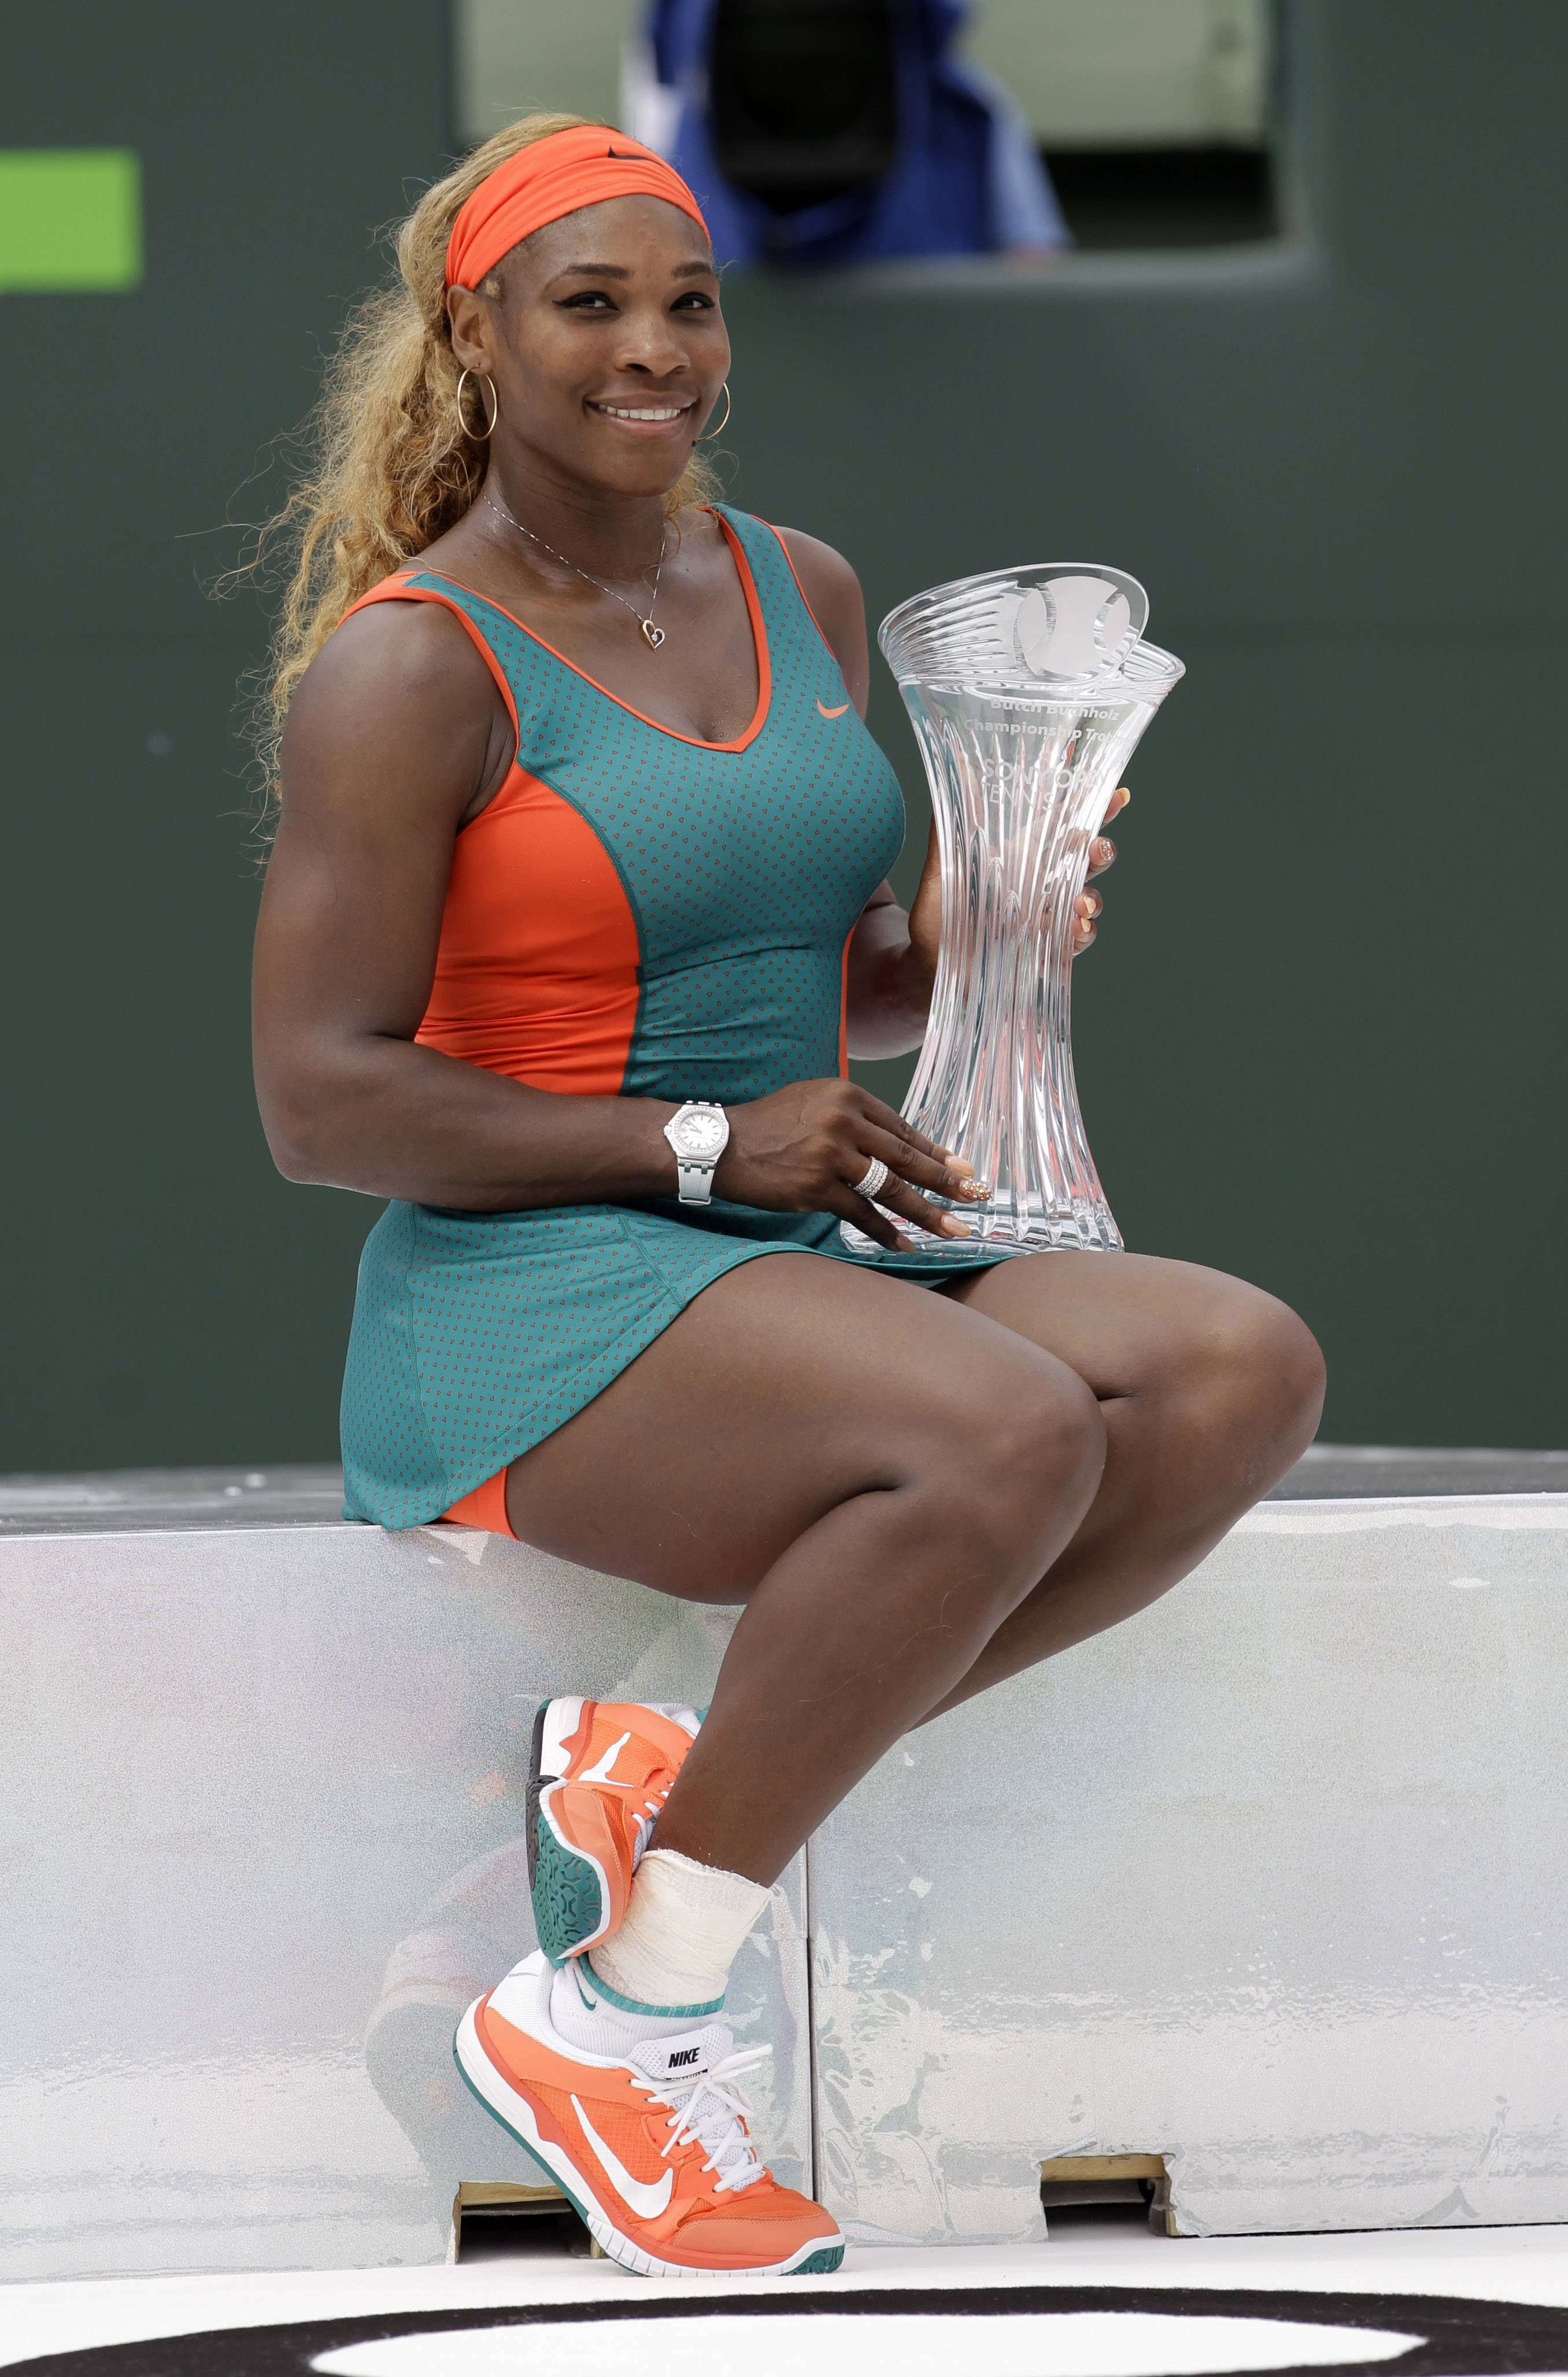 Serena Williams, of the United States, poses with the trophy after defeating Li Na, of China, in the women's final 7-5, 6-1 at the Sony Open Tennis tournament in Key Biscayne, Fla.